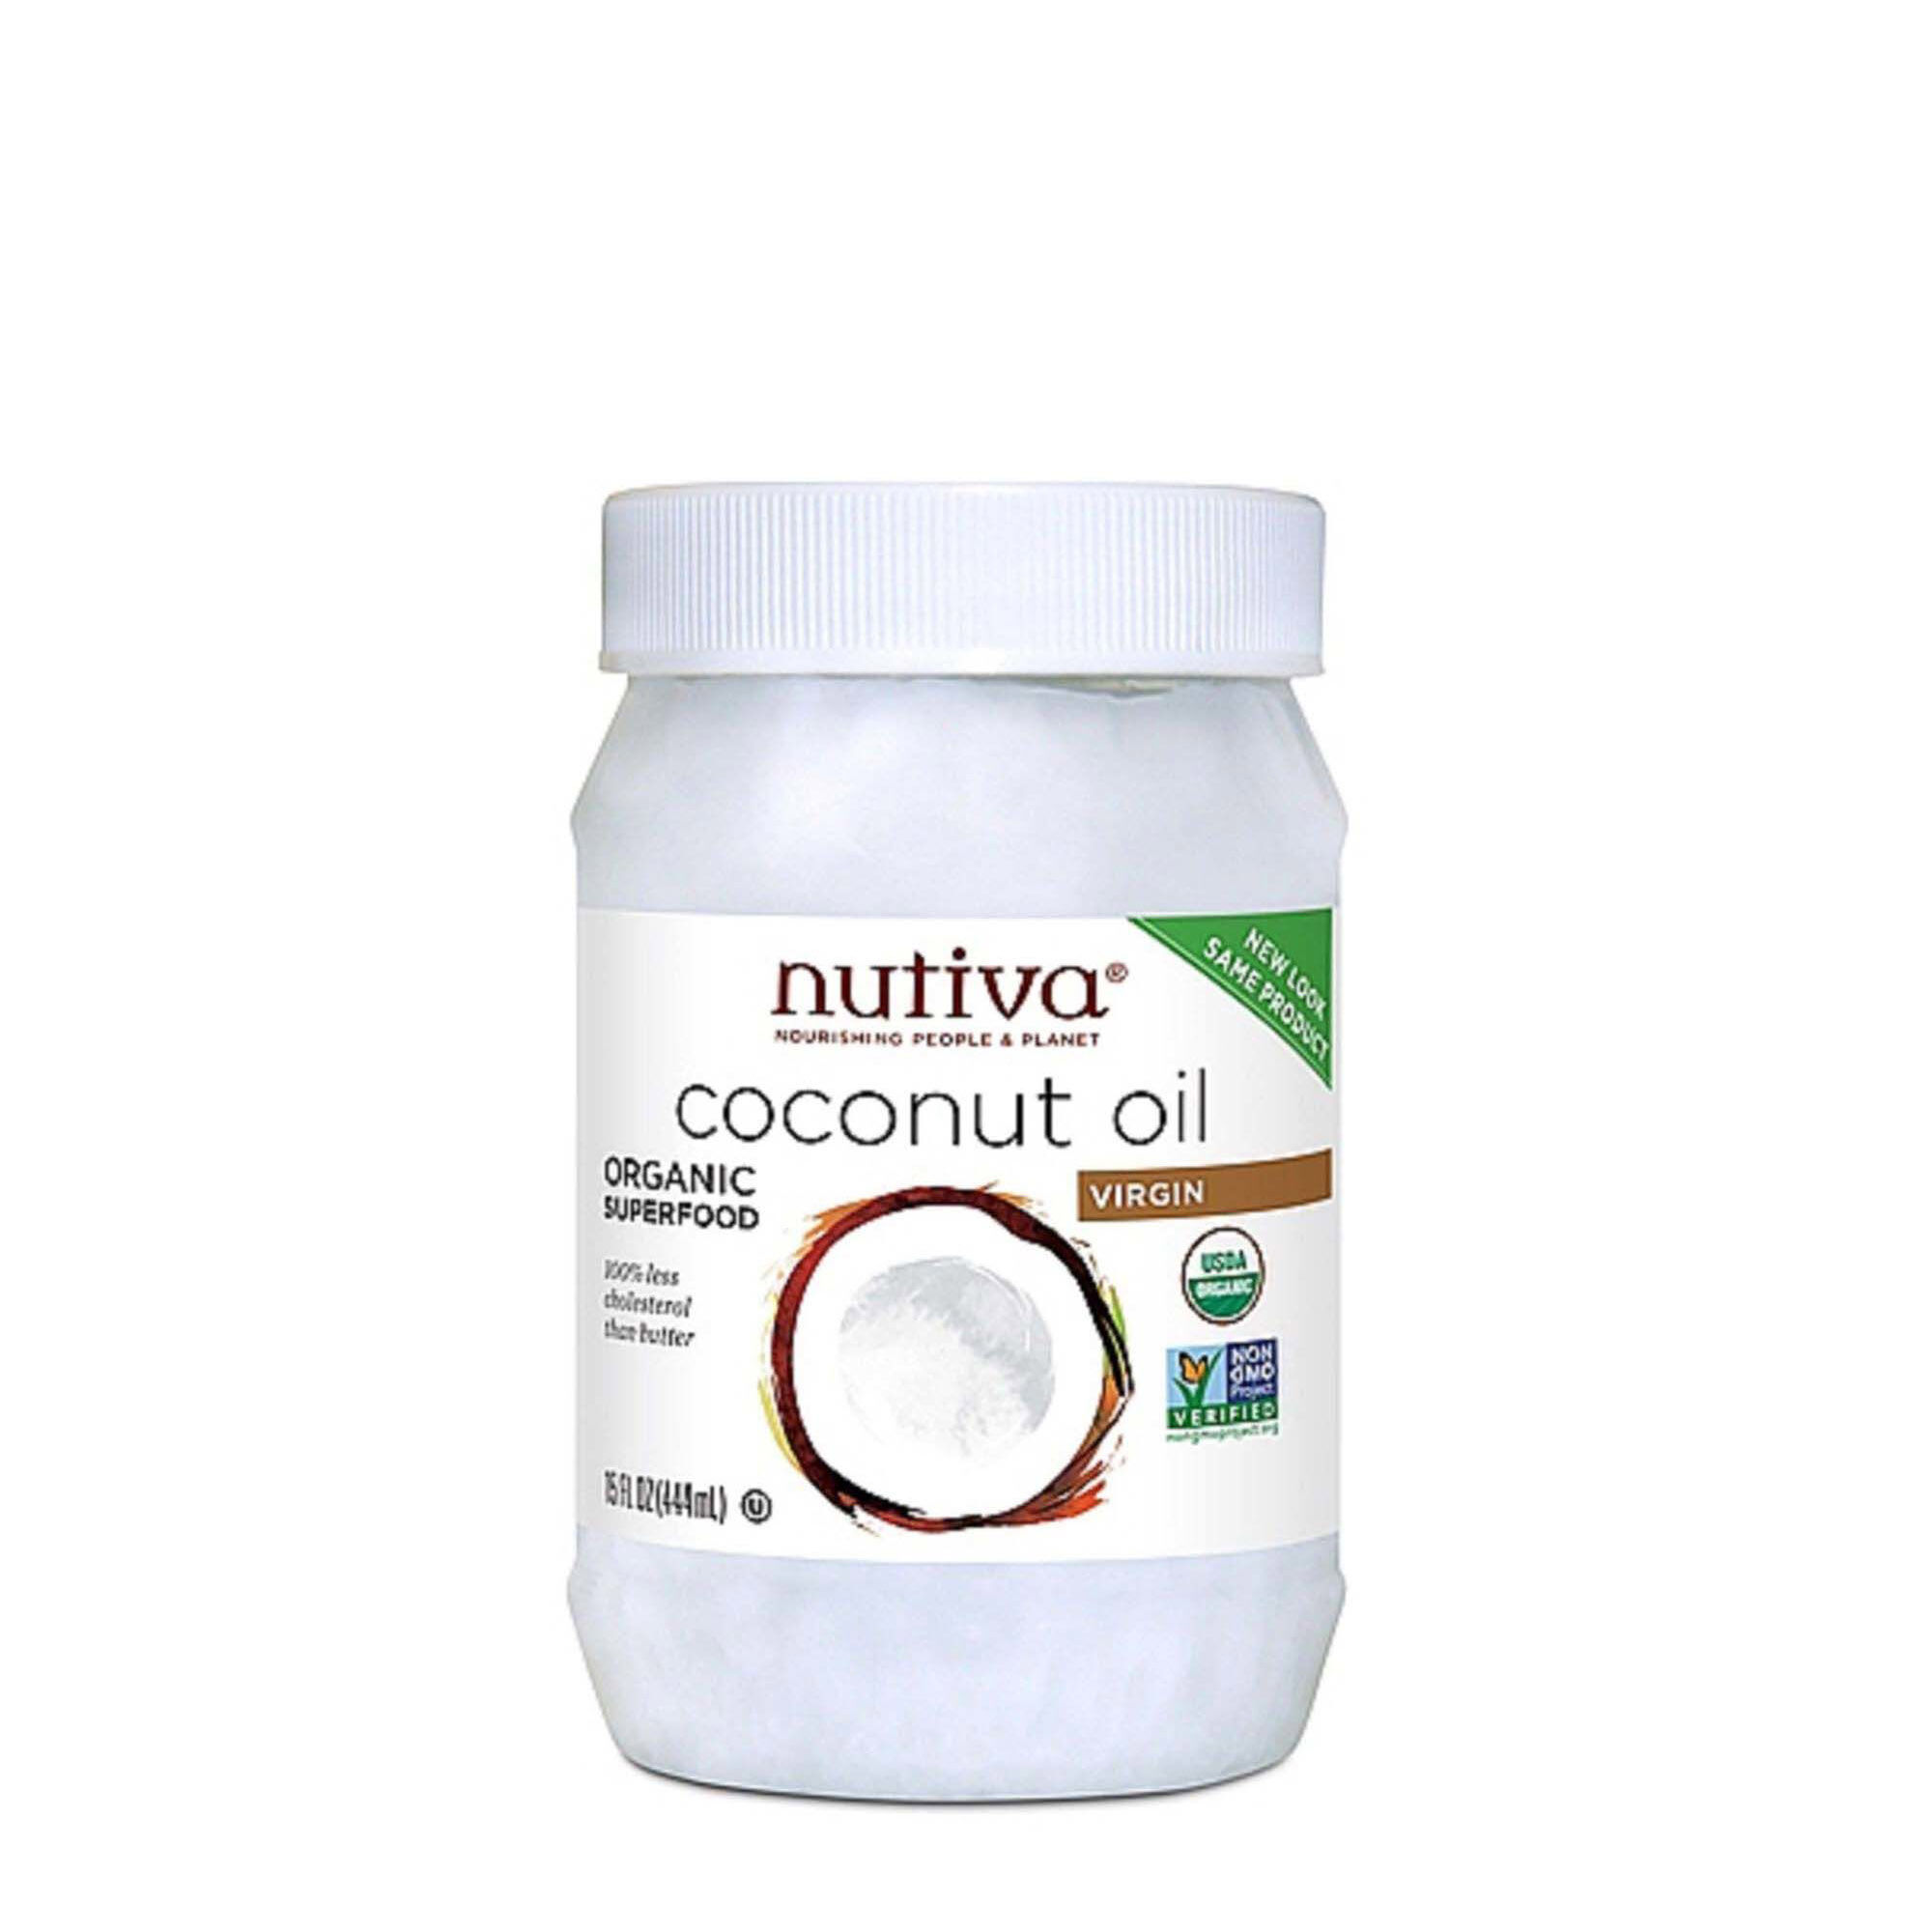 Nutiva® Coconut Oil- Virgin